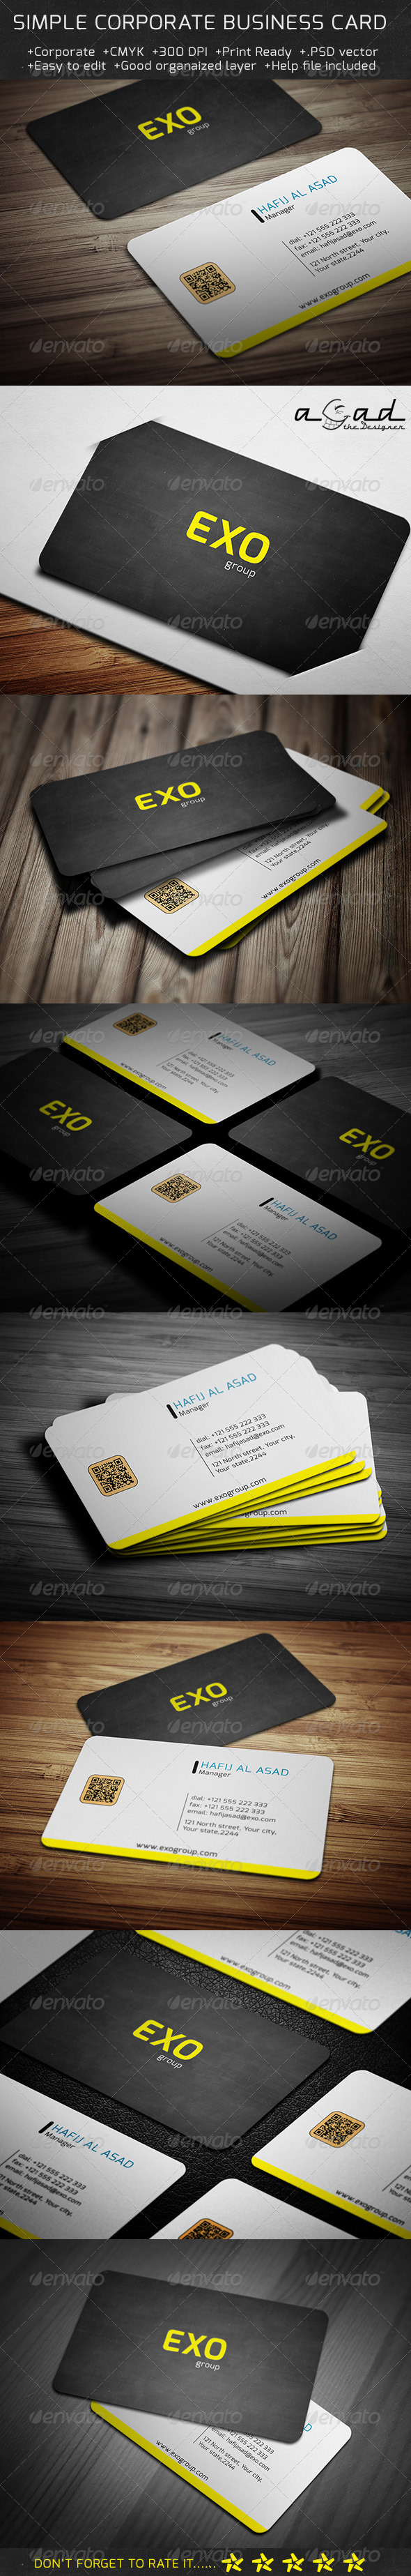 GraphicRiver Simple Corporate Business Card 6124525